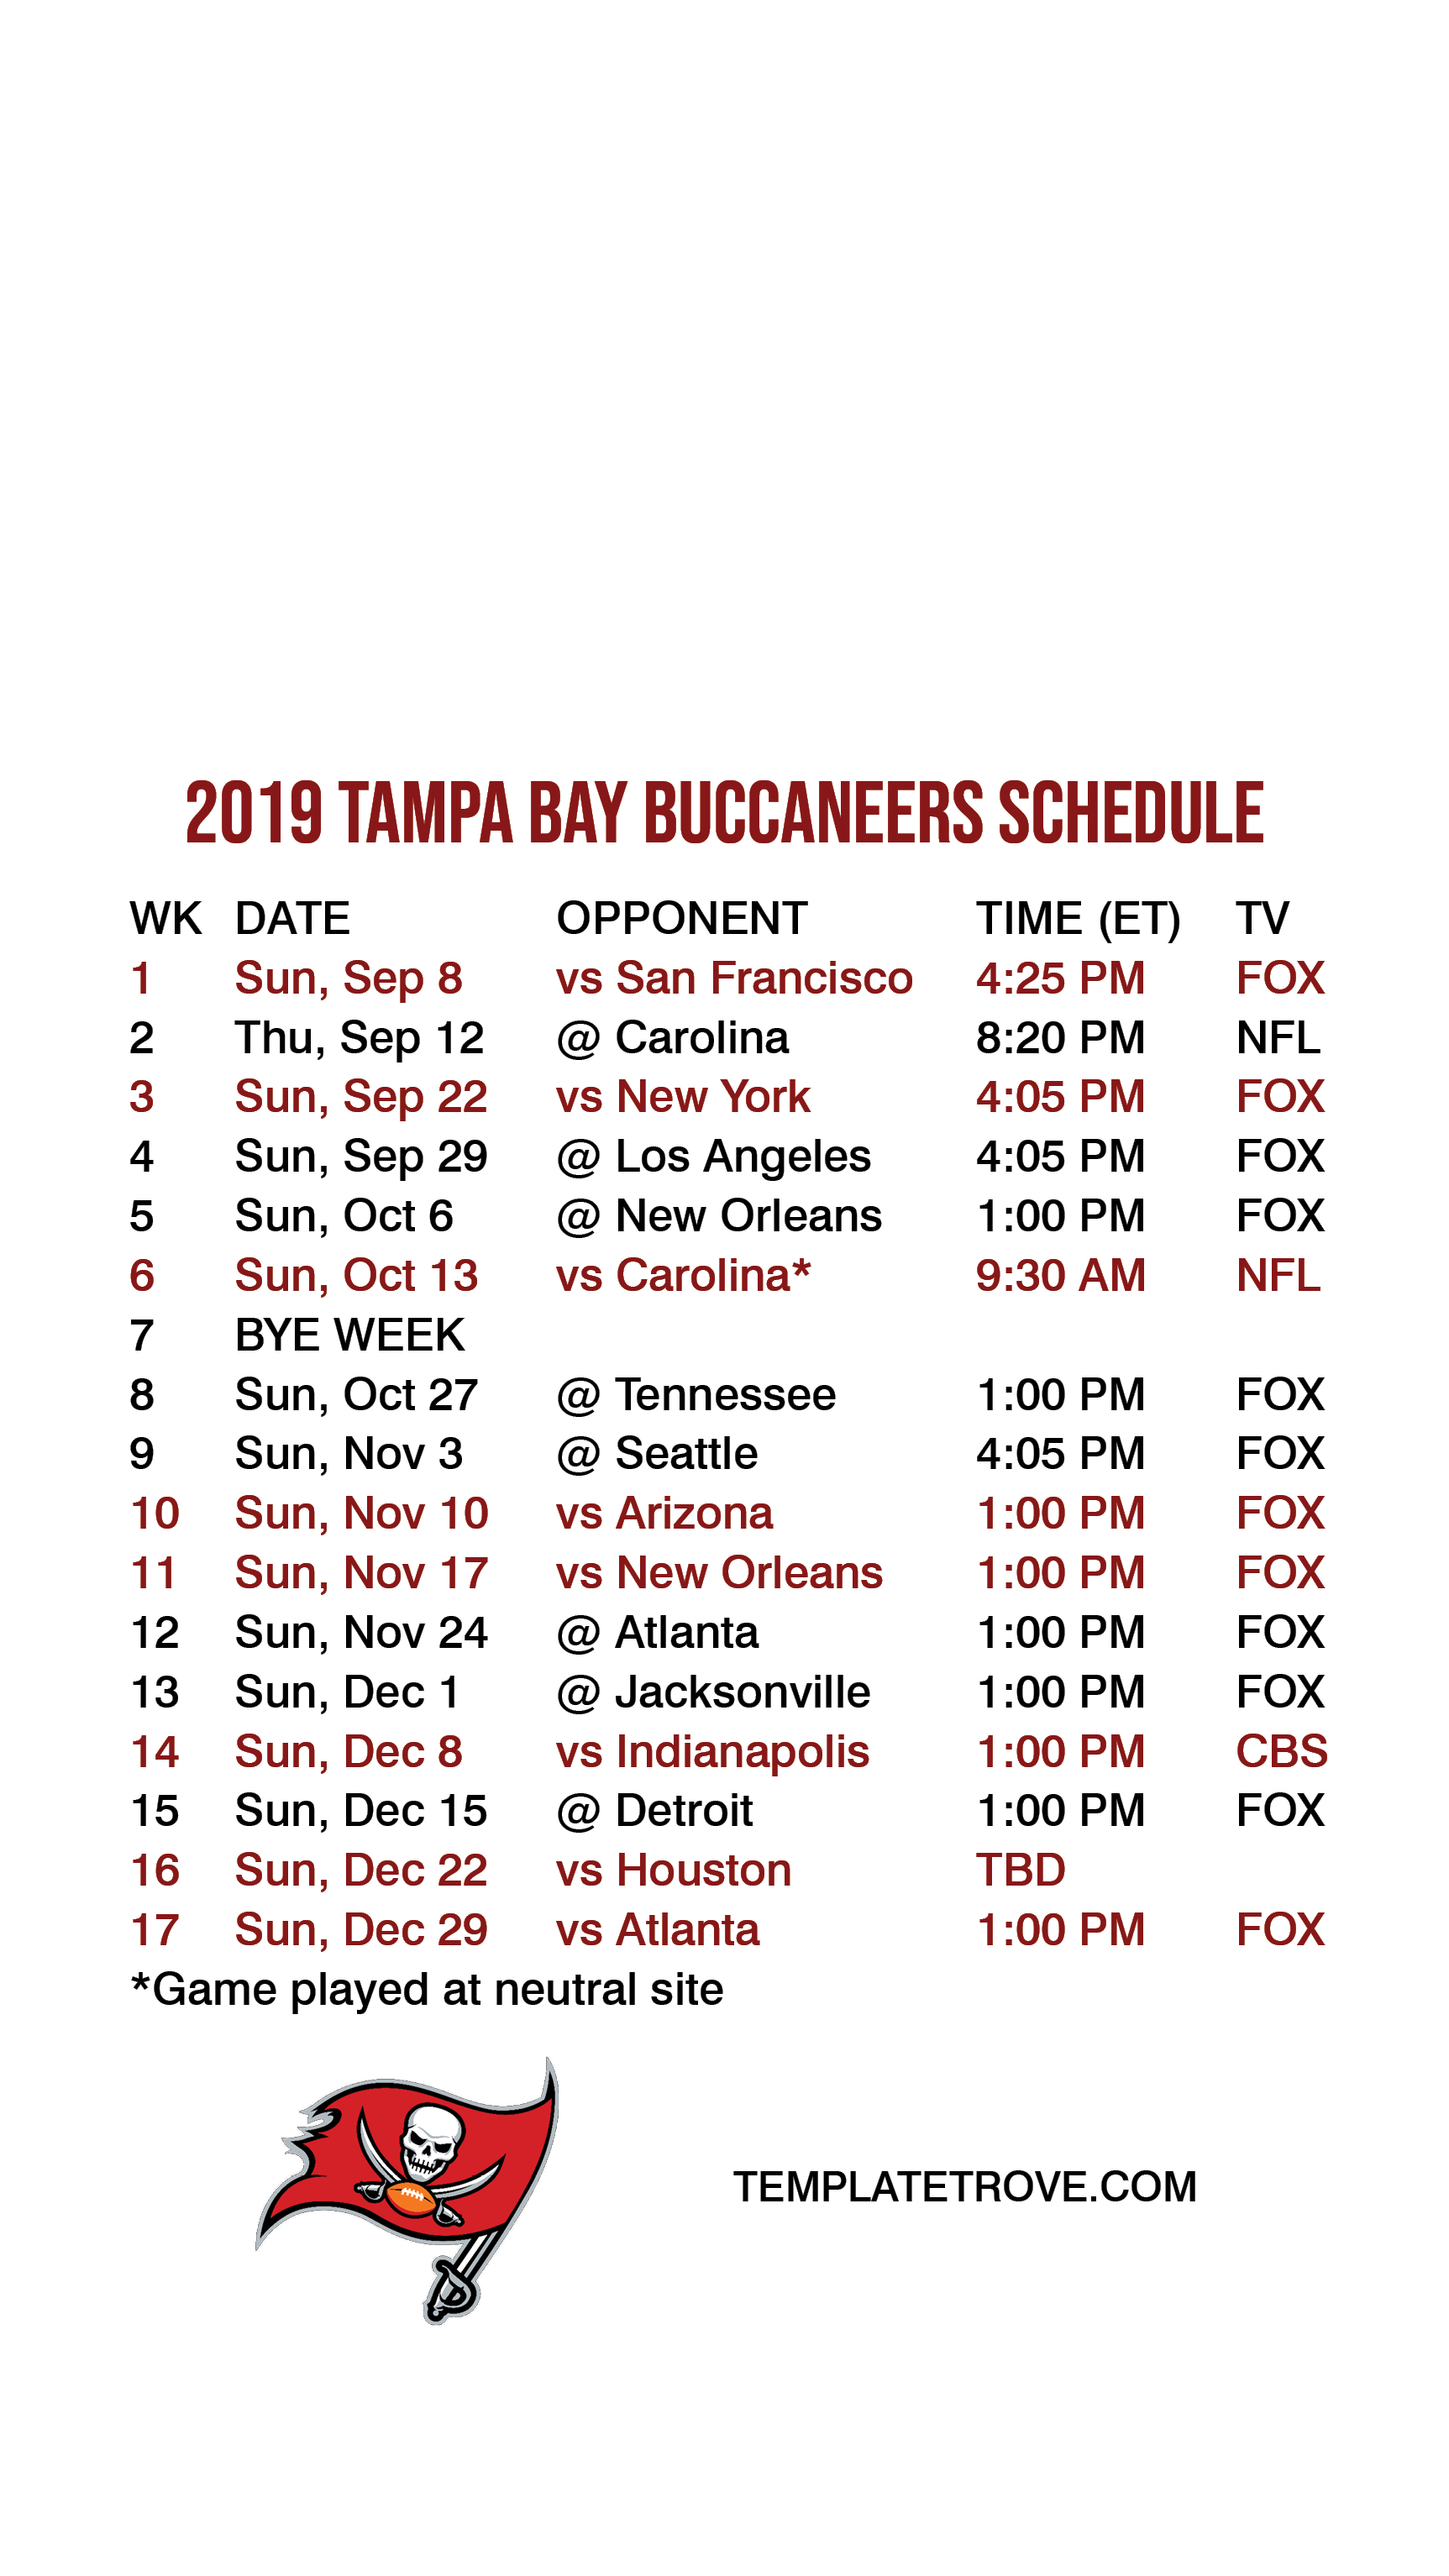 2019-2020 Tampa Bay Buccaneers Lock Screen Schedule For